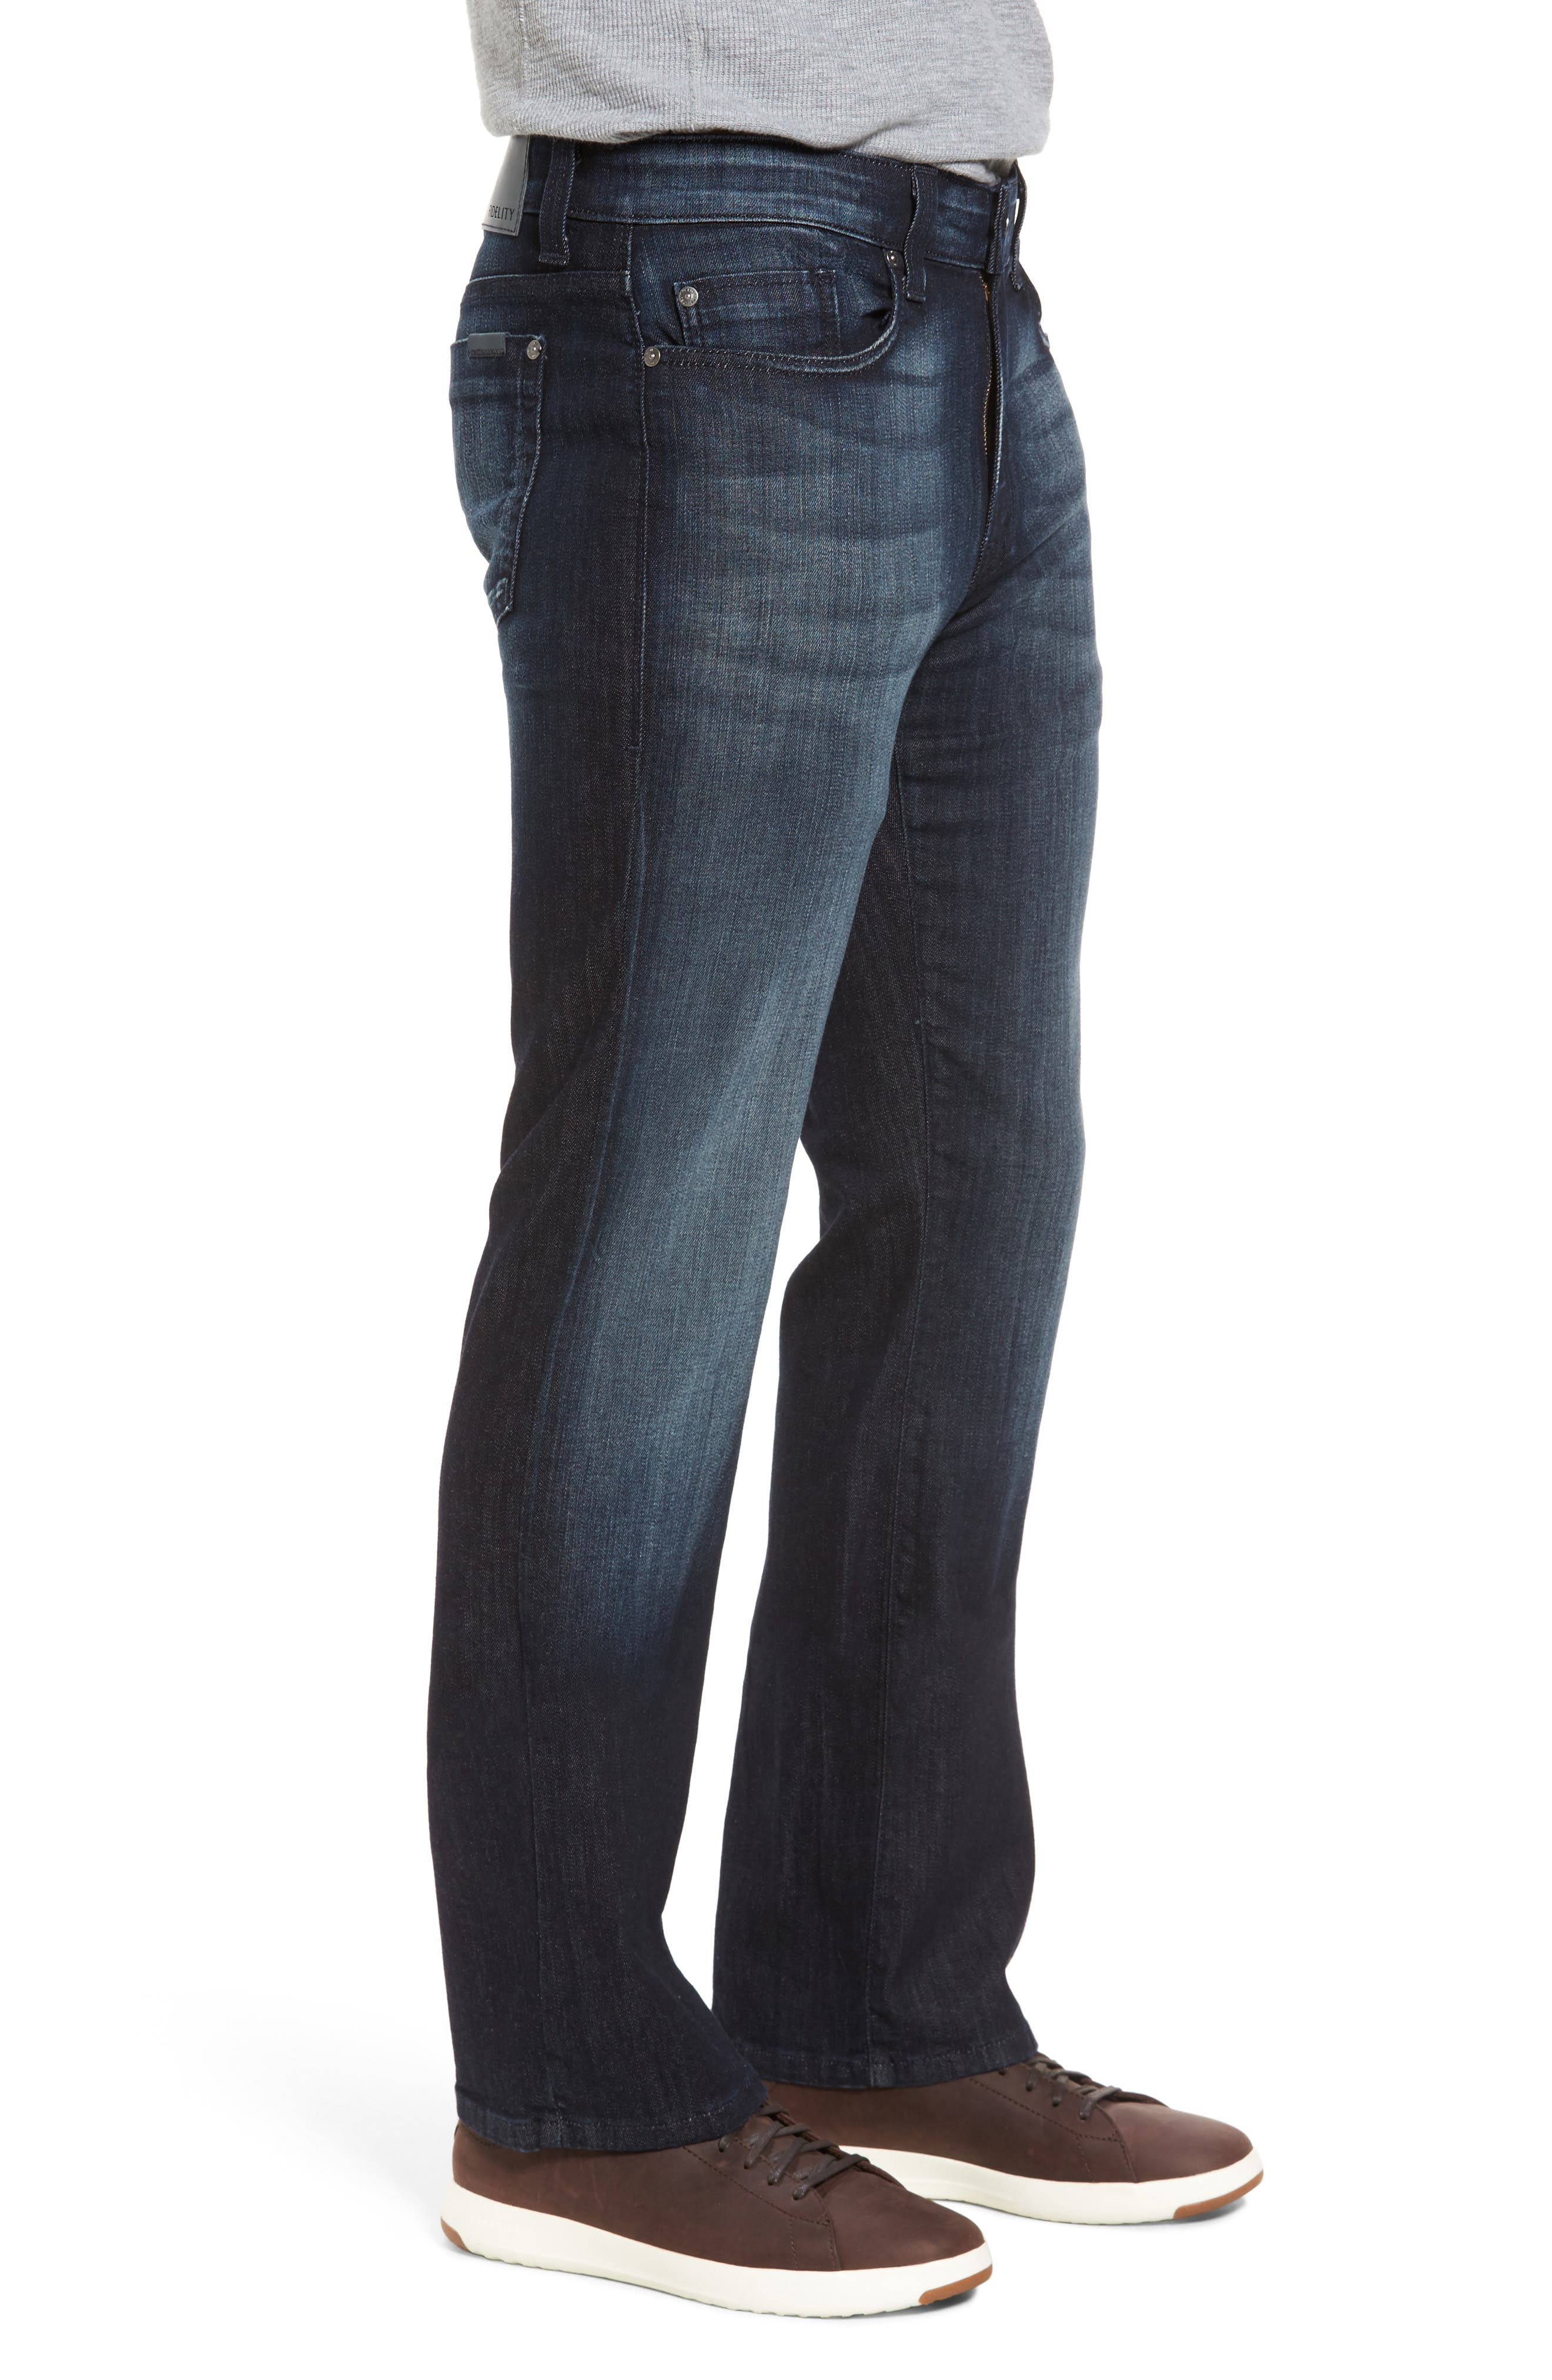 5011 Relaxed Fit Jeans,                             Alternate thumbnail 3, color,                             400